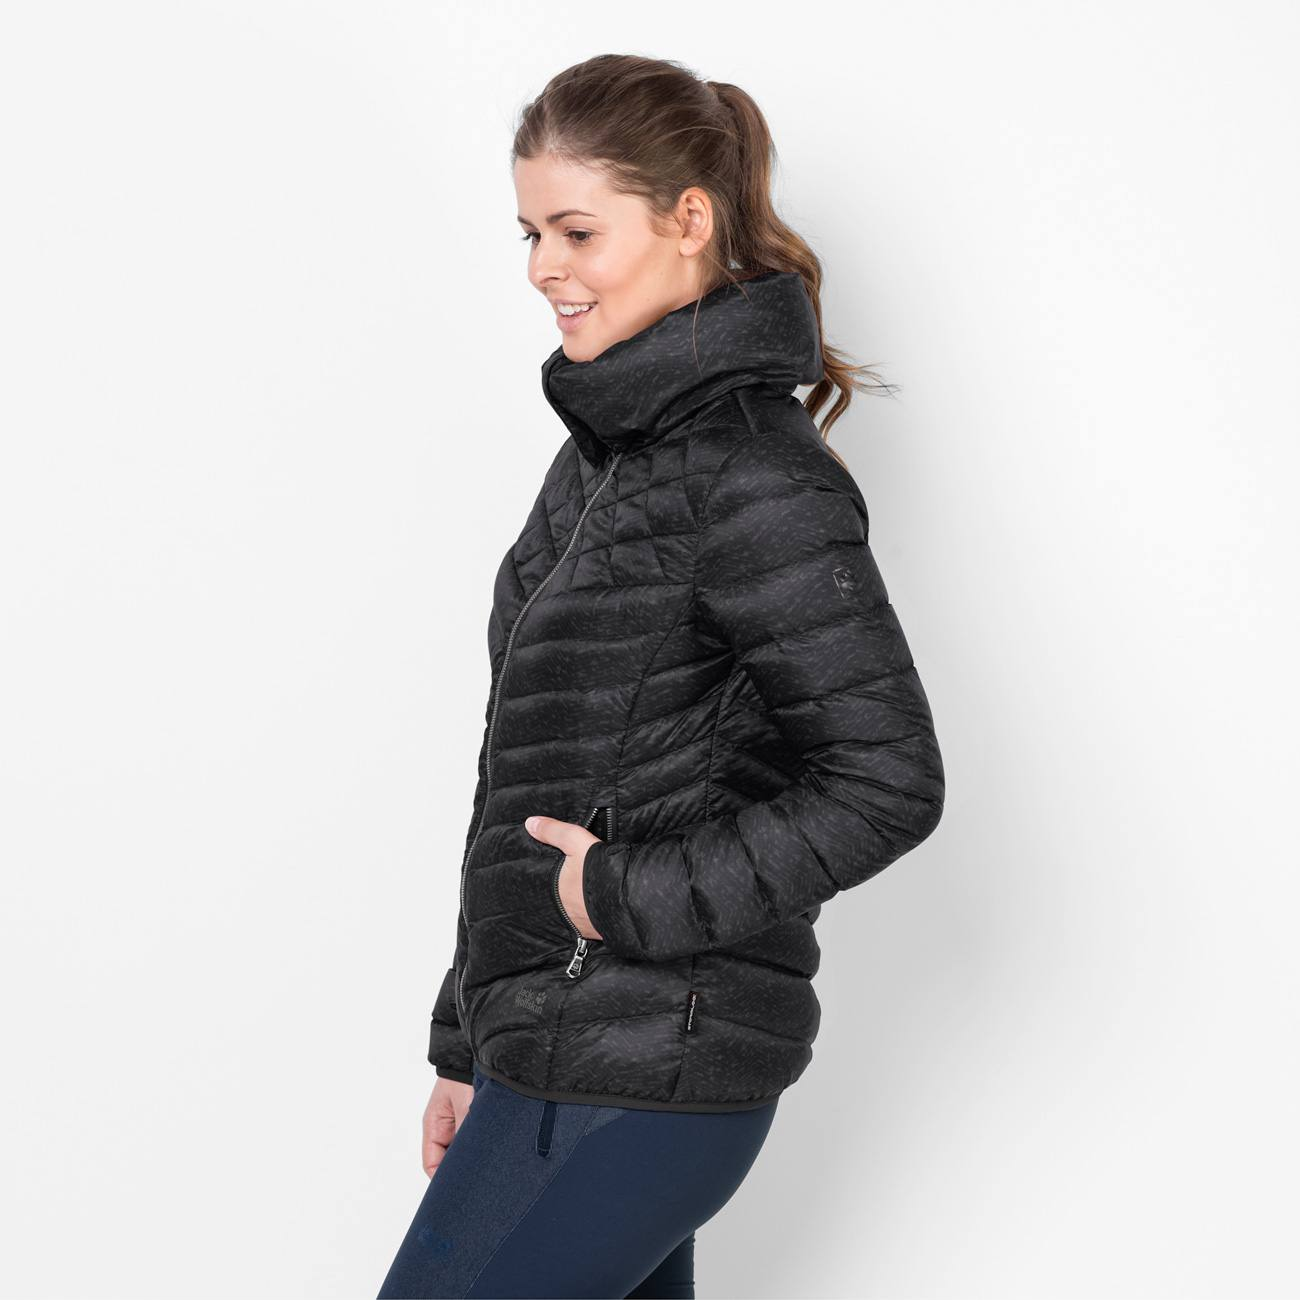 2a9e472101 Jack Wolfskin Richmond Hill Jacket Women. Full image Full image ...